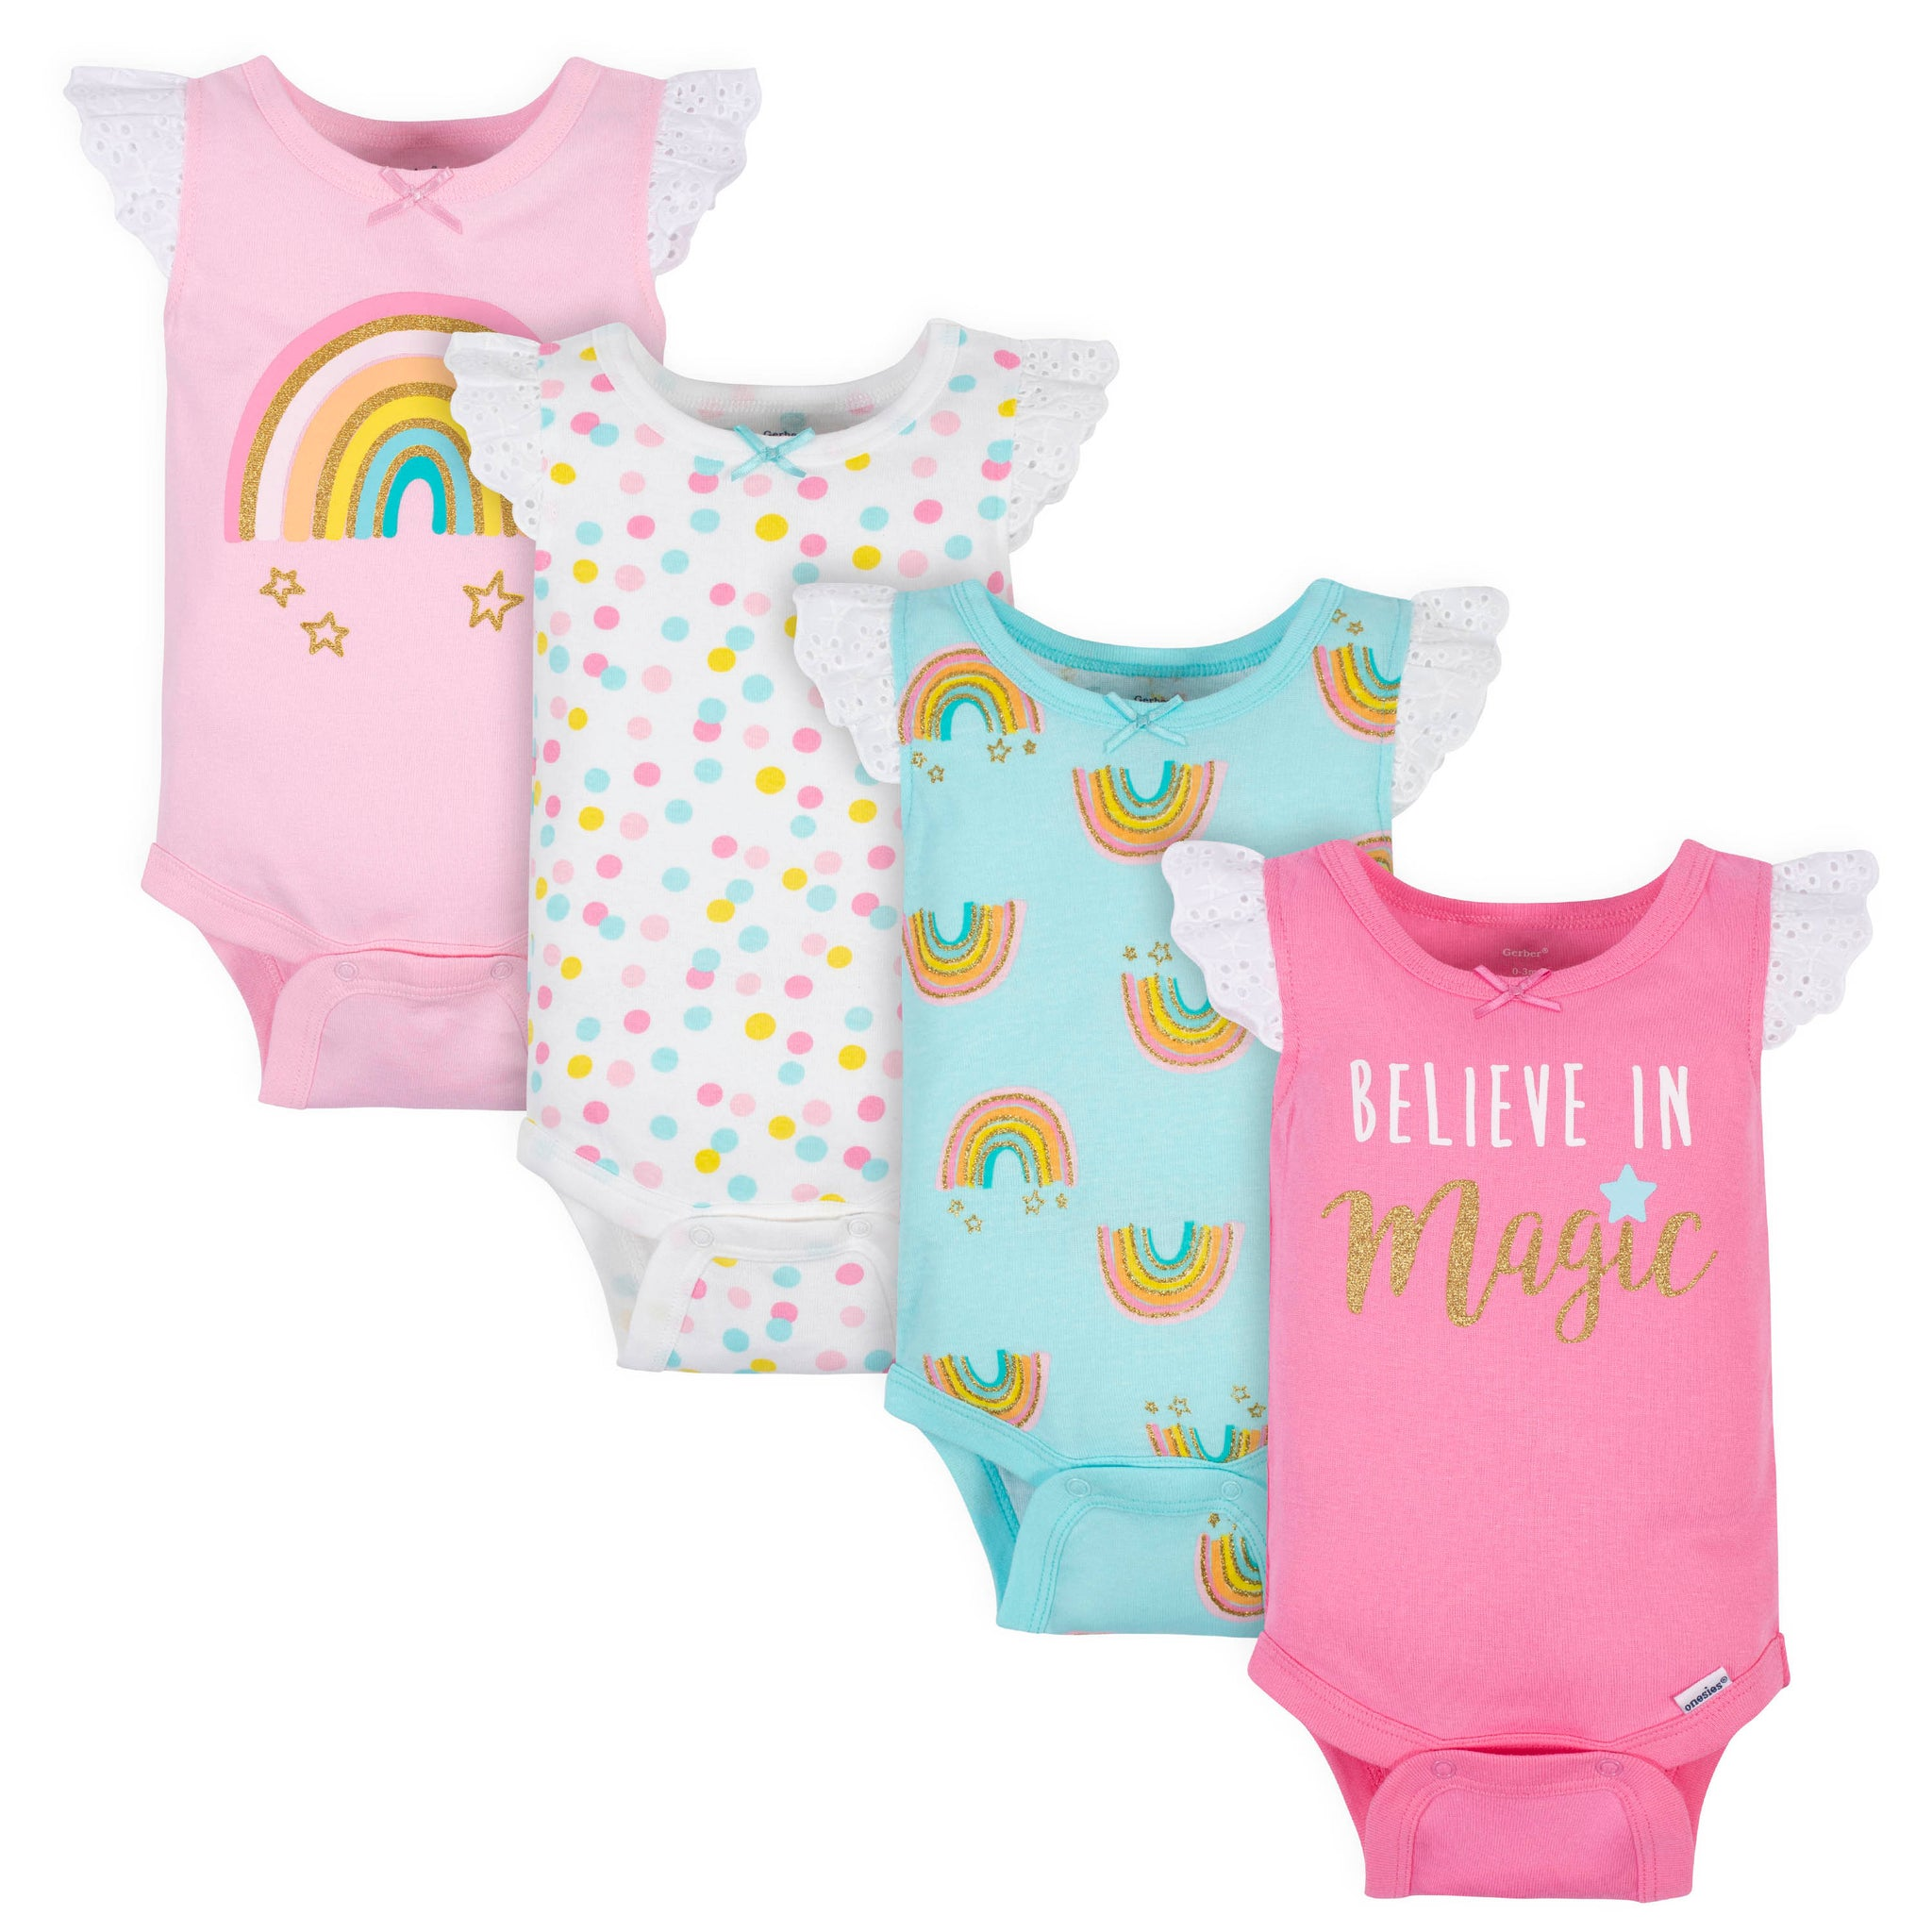 4-Pack Baby Girls Rainbow Onesies® Bodysuits-Gerber Childrenswear Wholesale